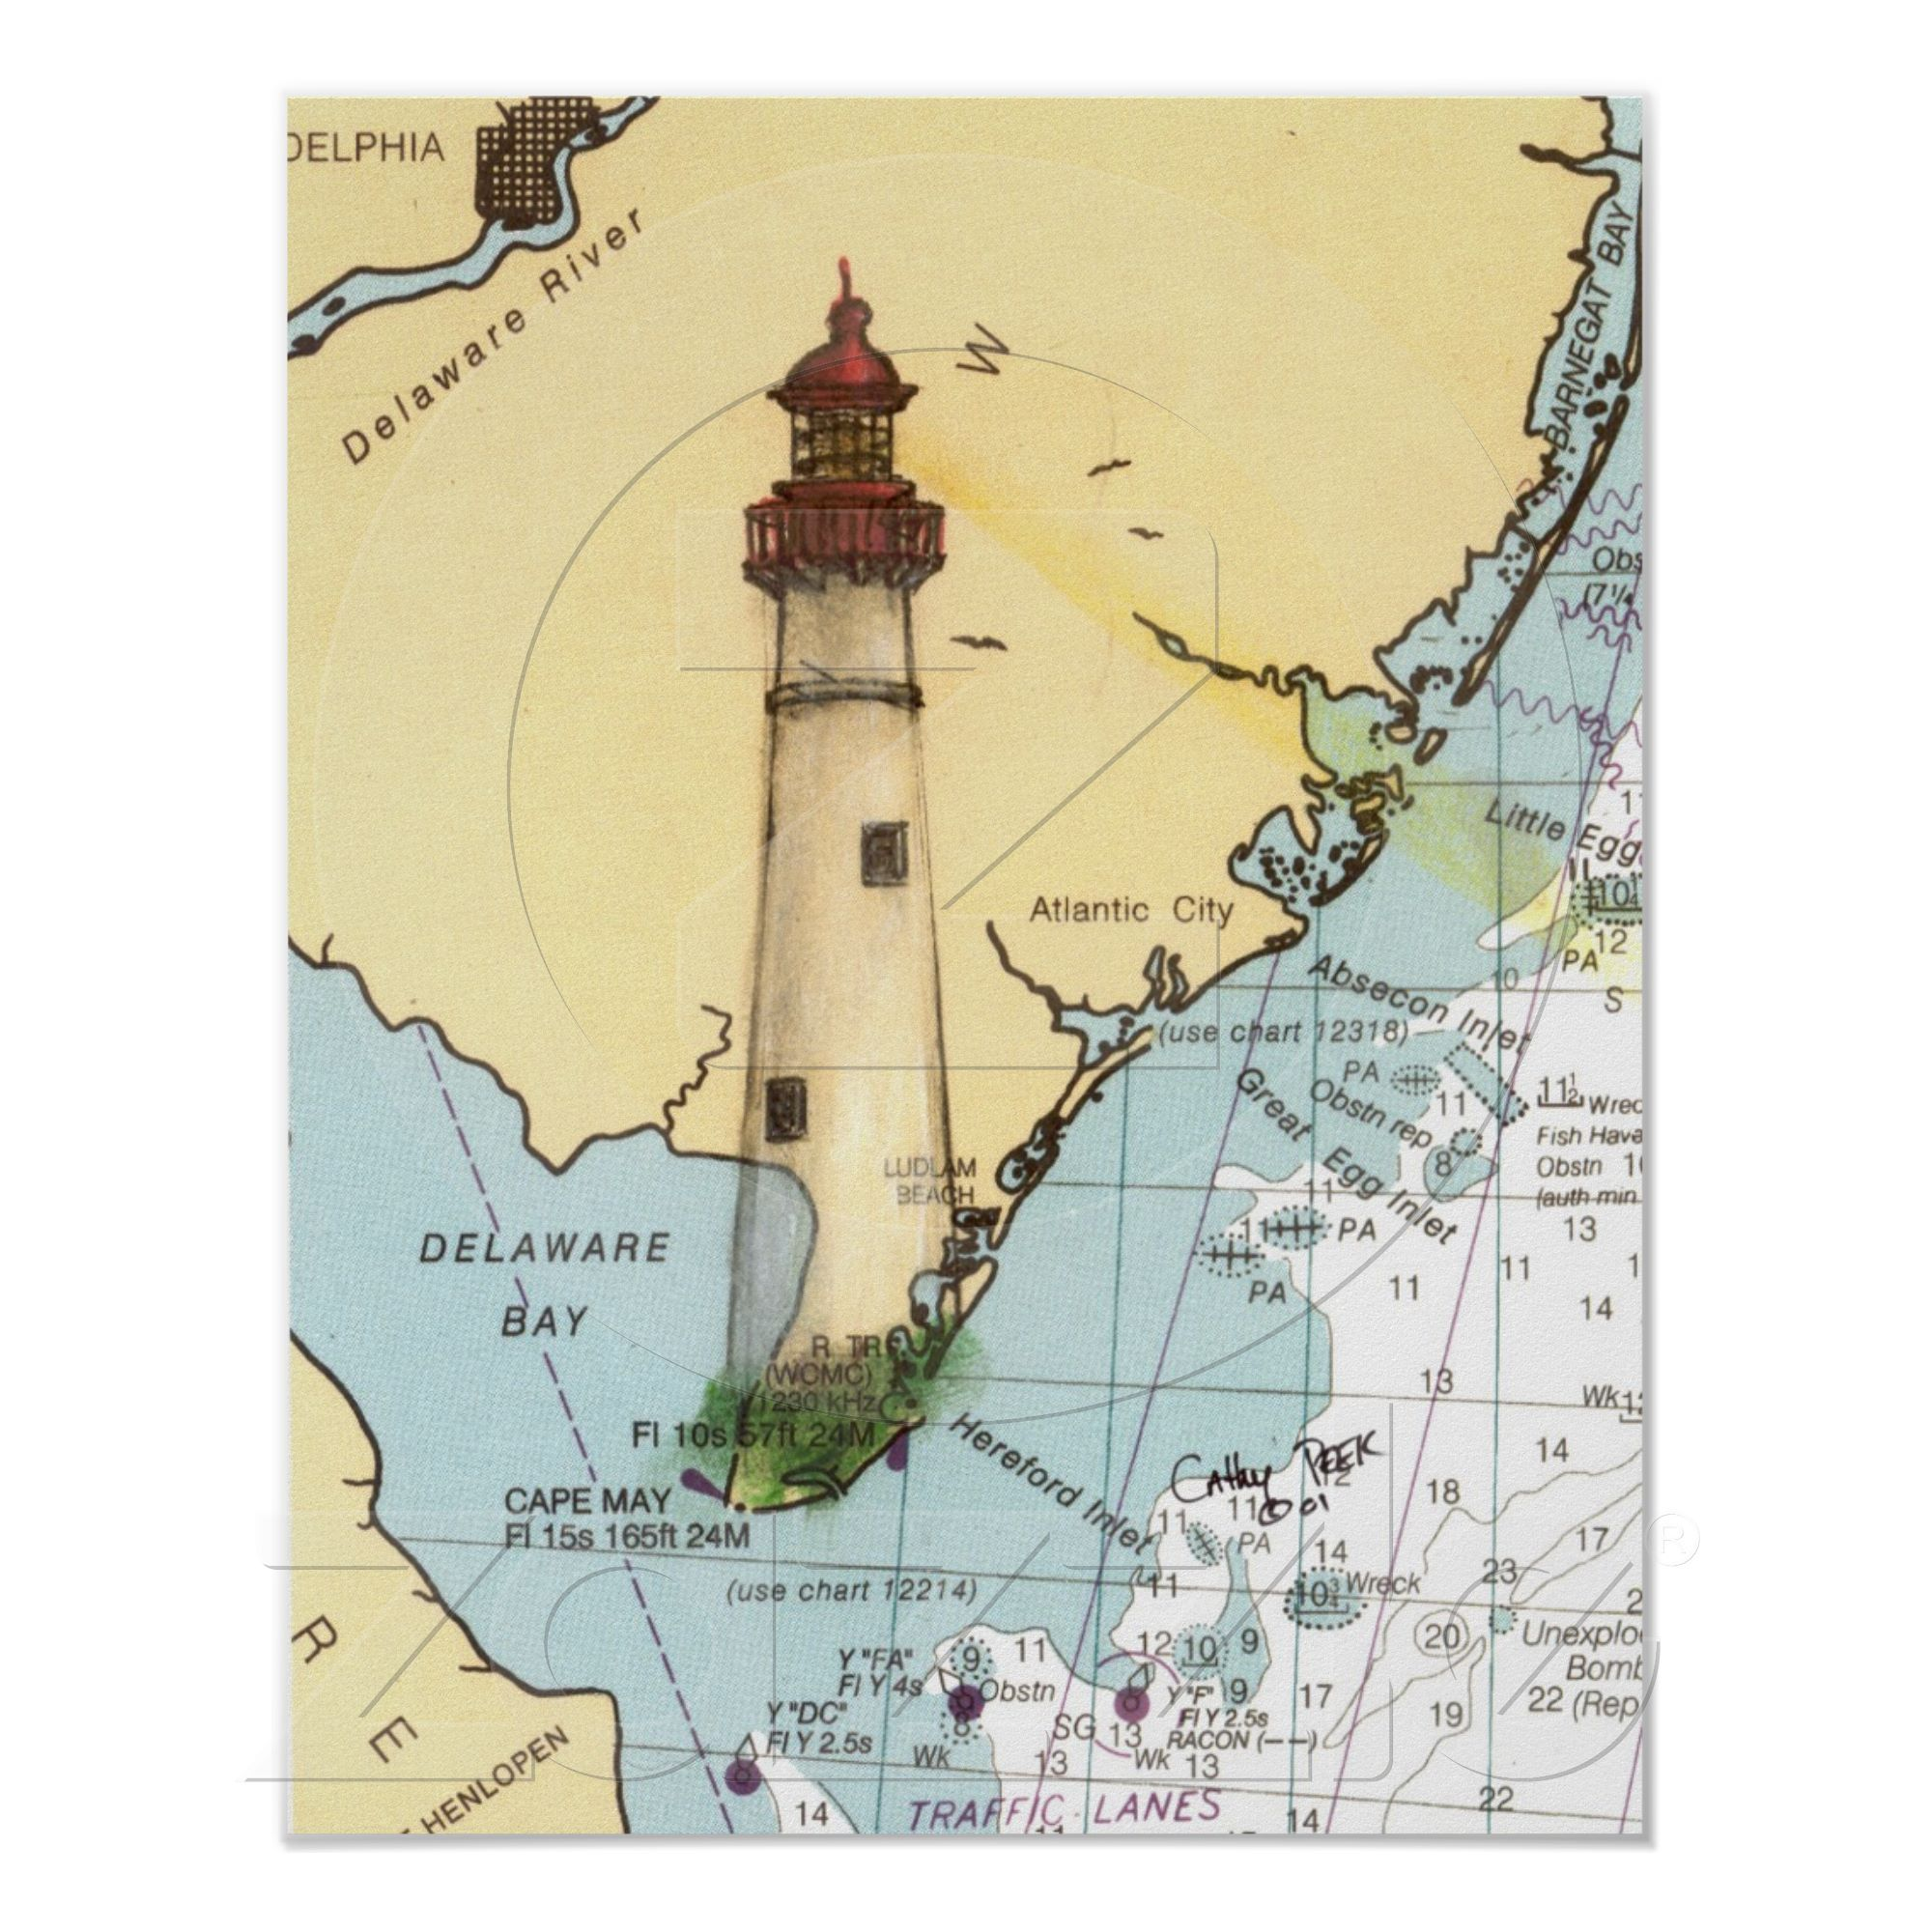 Cape May Lighthouse | Art Gallery | Pinterest | Lighthouse, Cape and ...